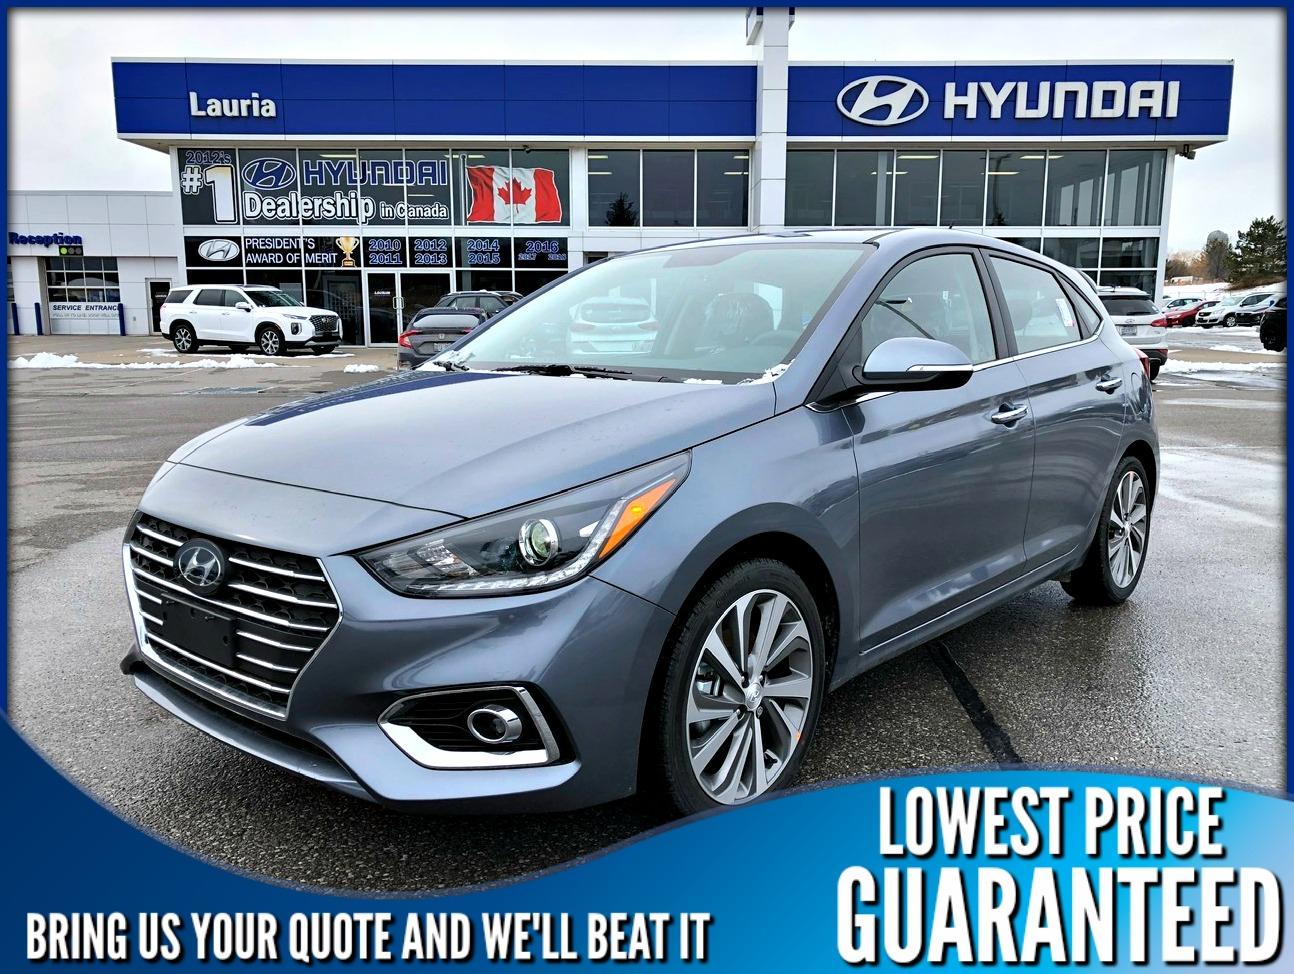 2022 hyundai accent hatchback review price  2021 hyundai